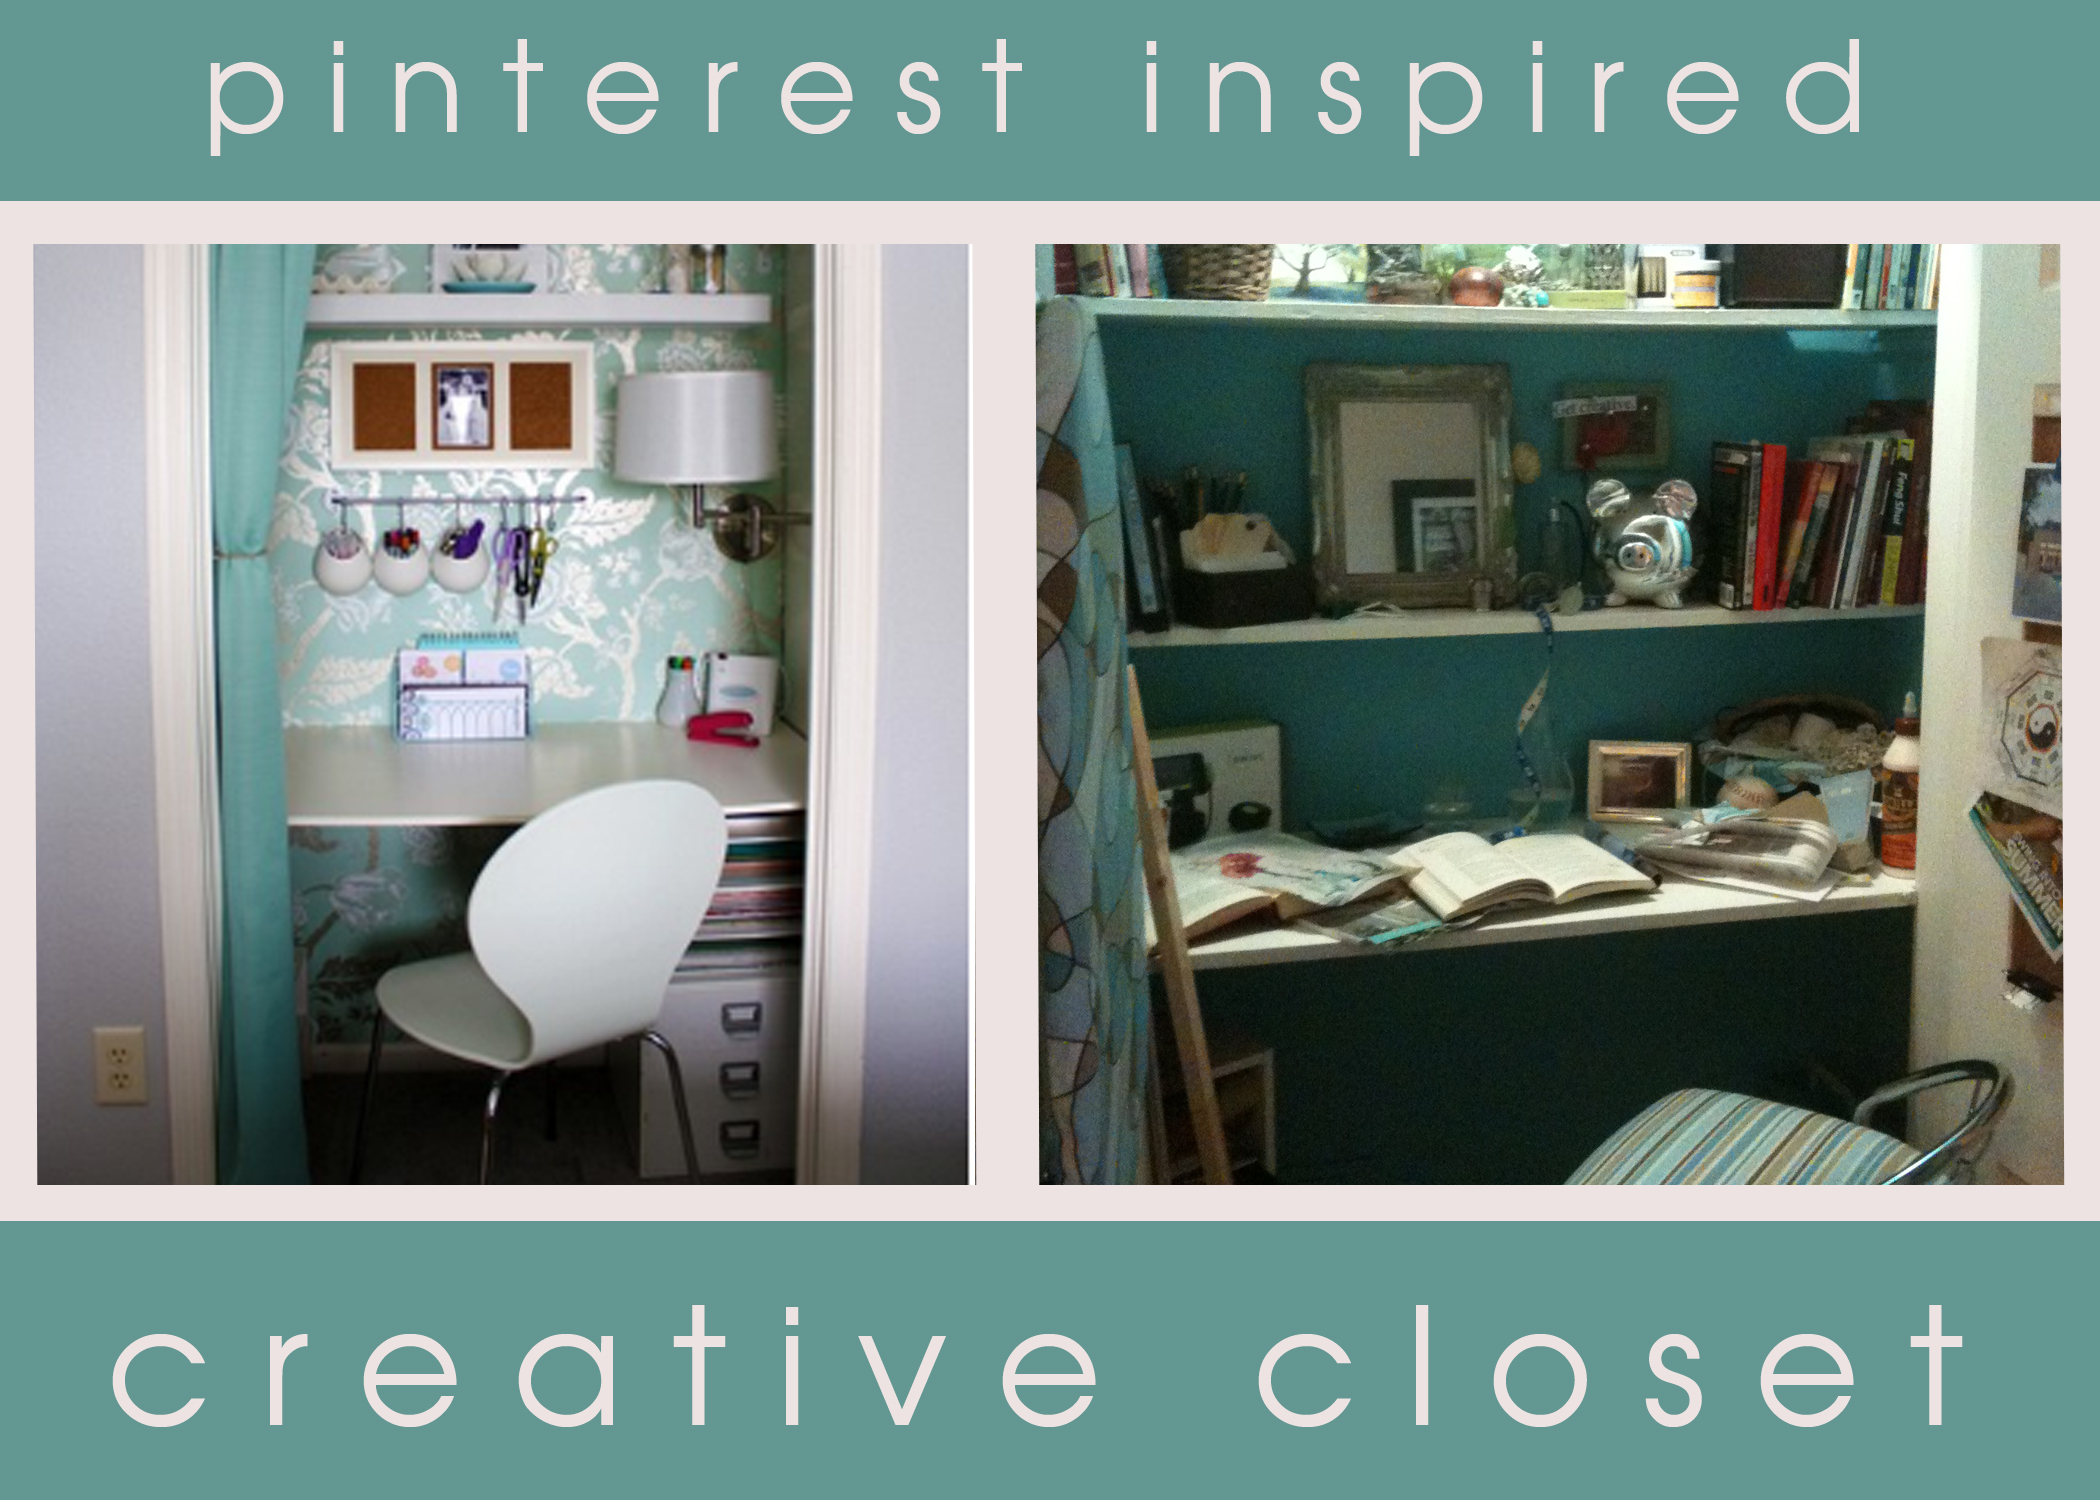 DIY: Pinterest Inspired Creative Closet